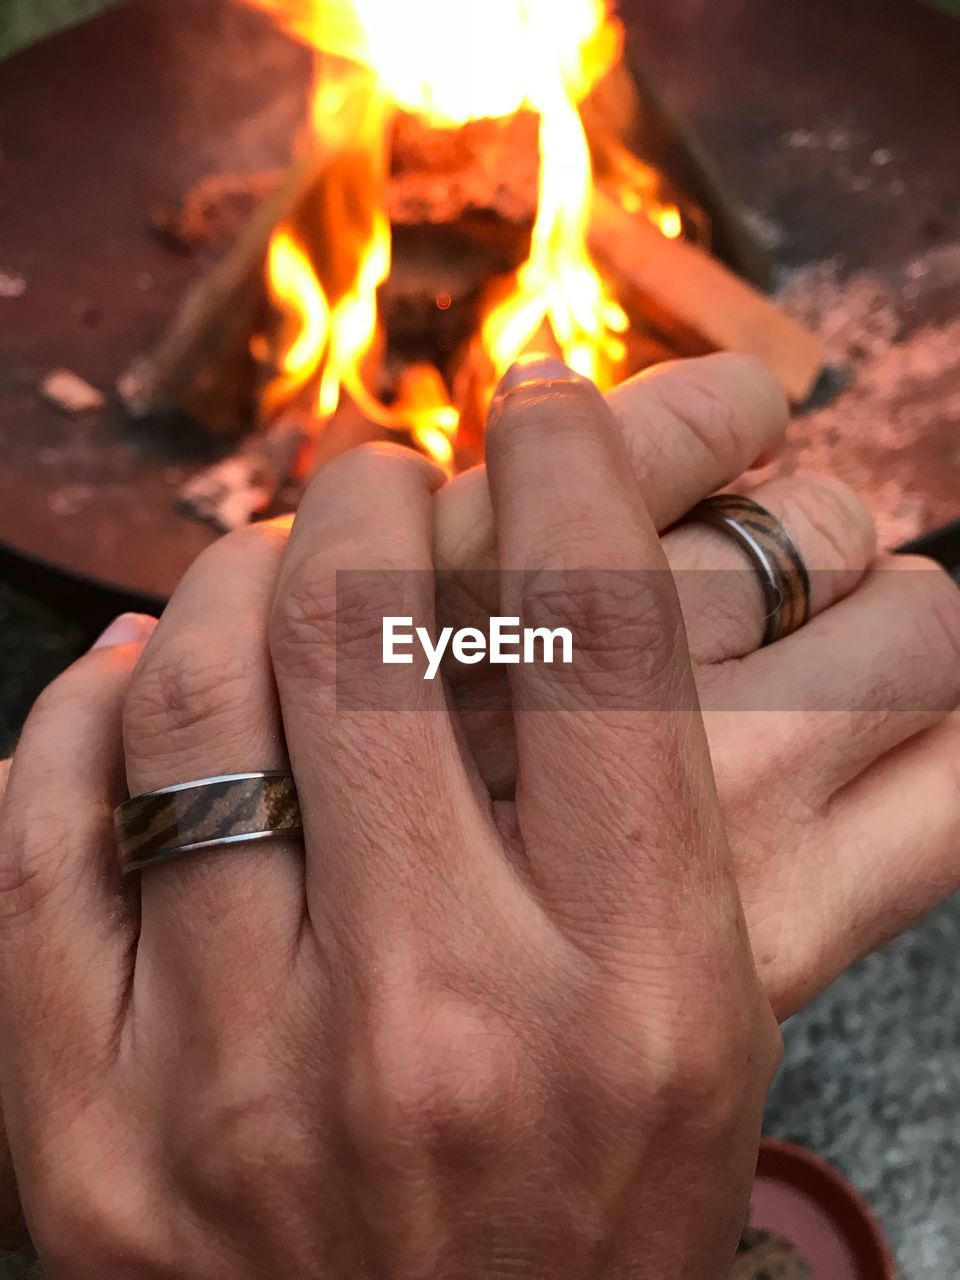 human hand, hand, burning, fire, fire - natural phenomenon, human body part, heat - temperature, real people, flame, people, body part, finger, human finger, glowing, men, holding, close-up, personal perspective, wood - material, bonfire